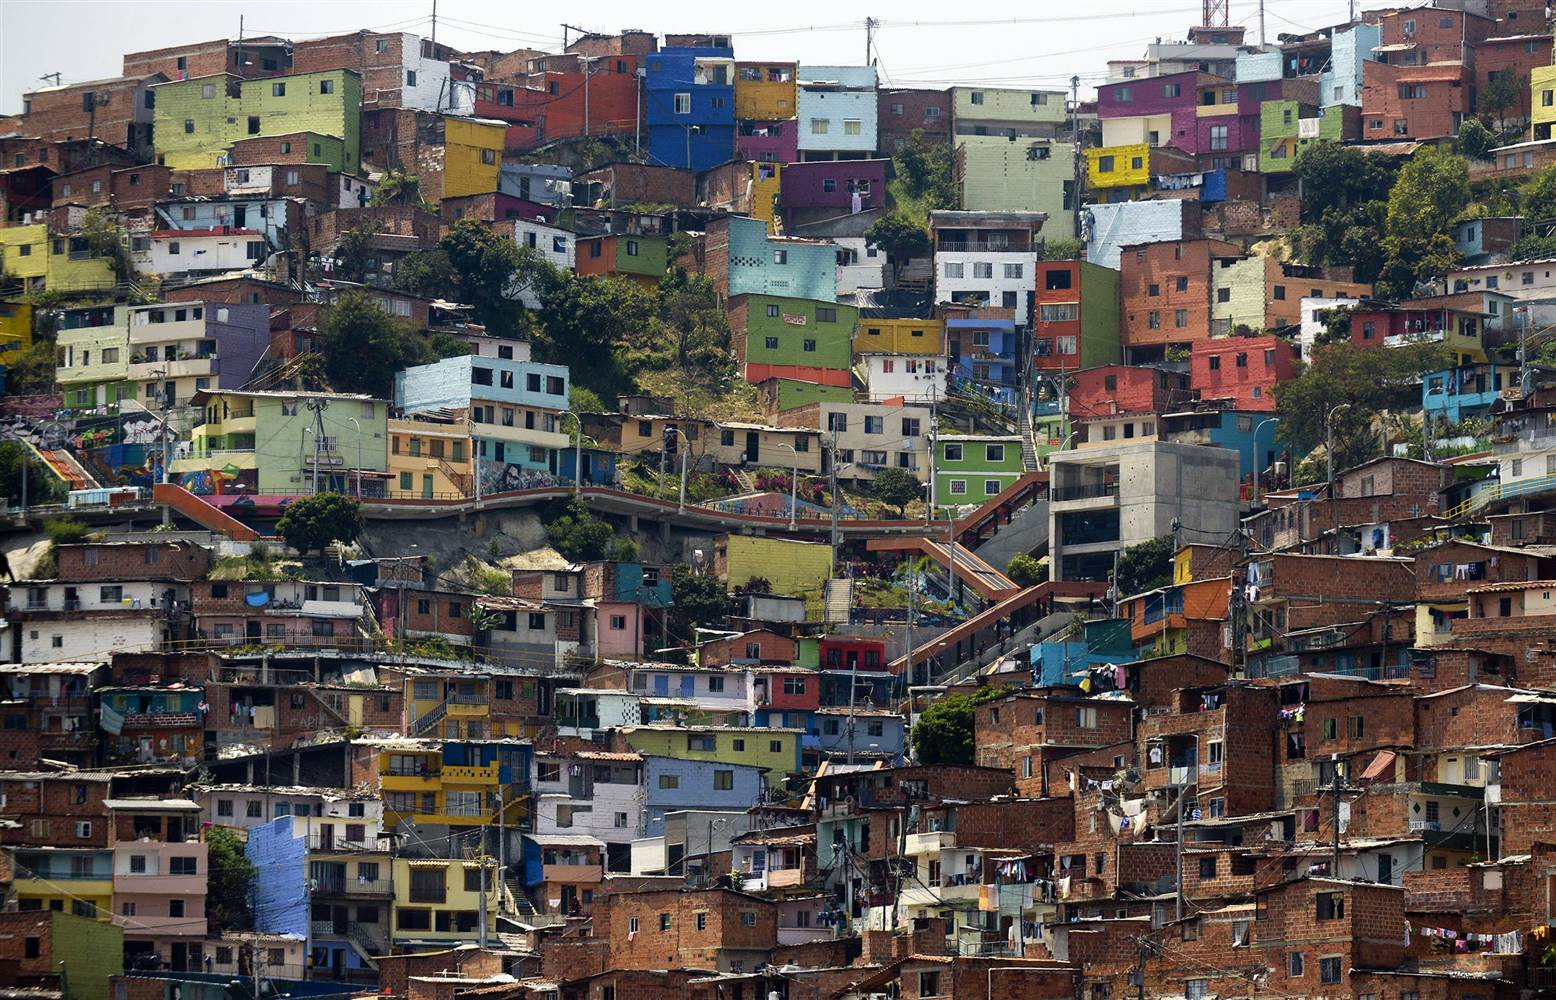 Medellín ranks third among the 10 most densely populated cities in the world